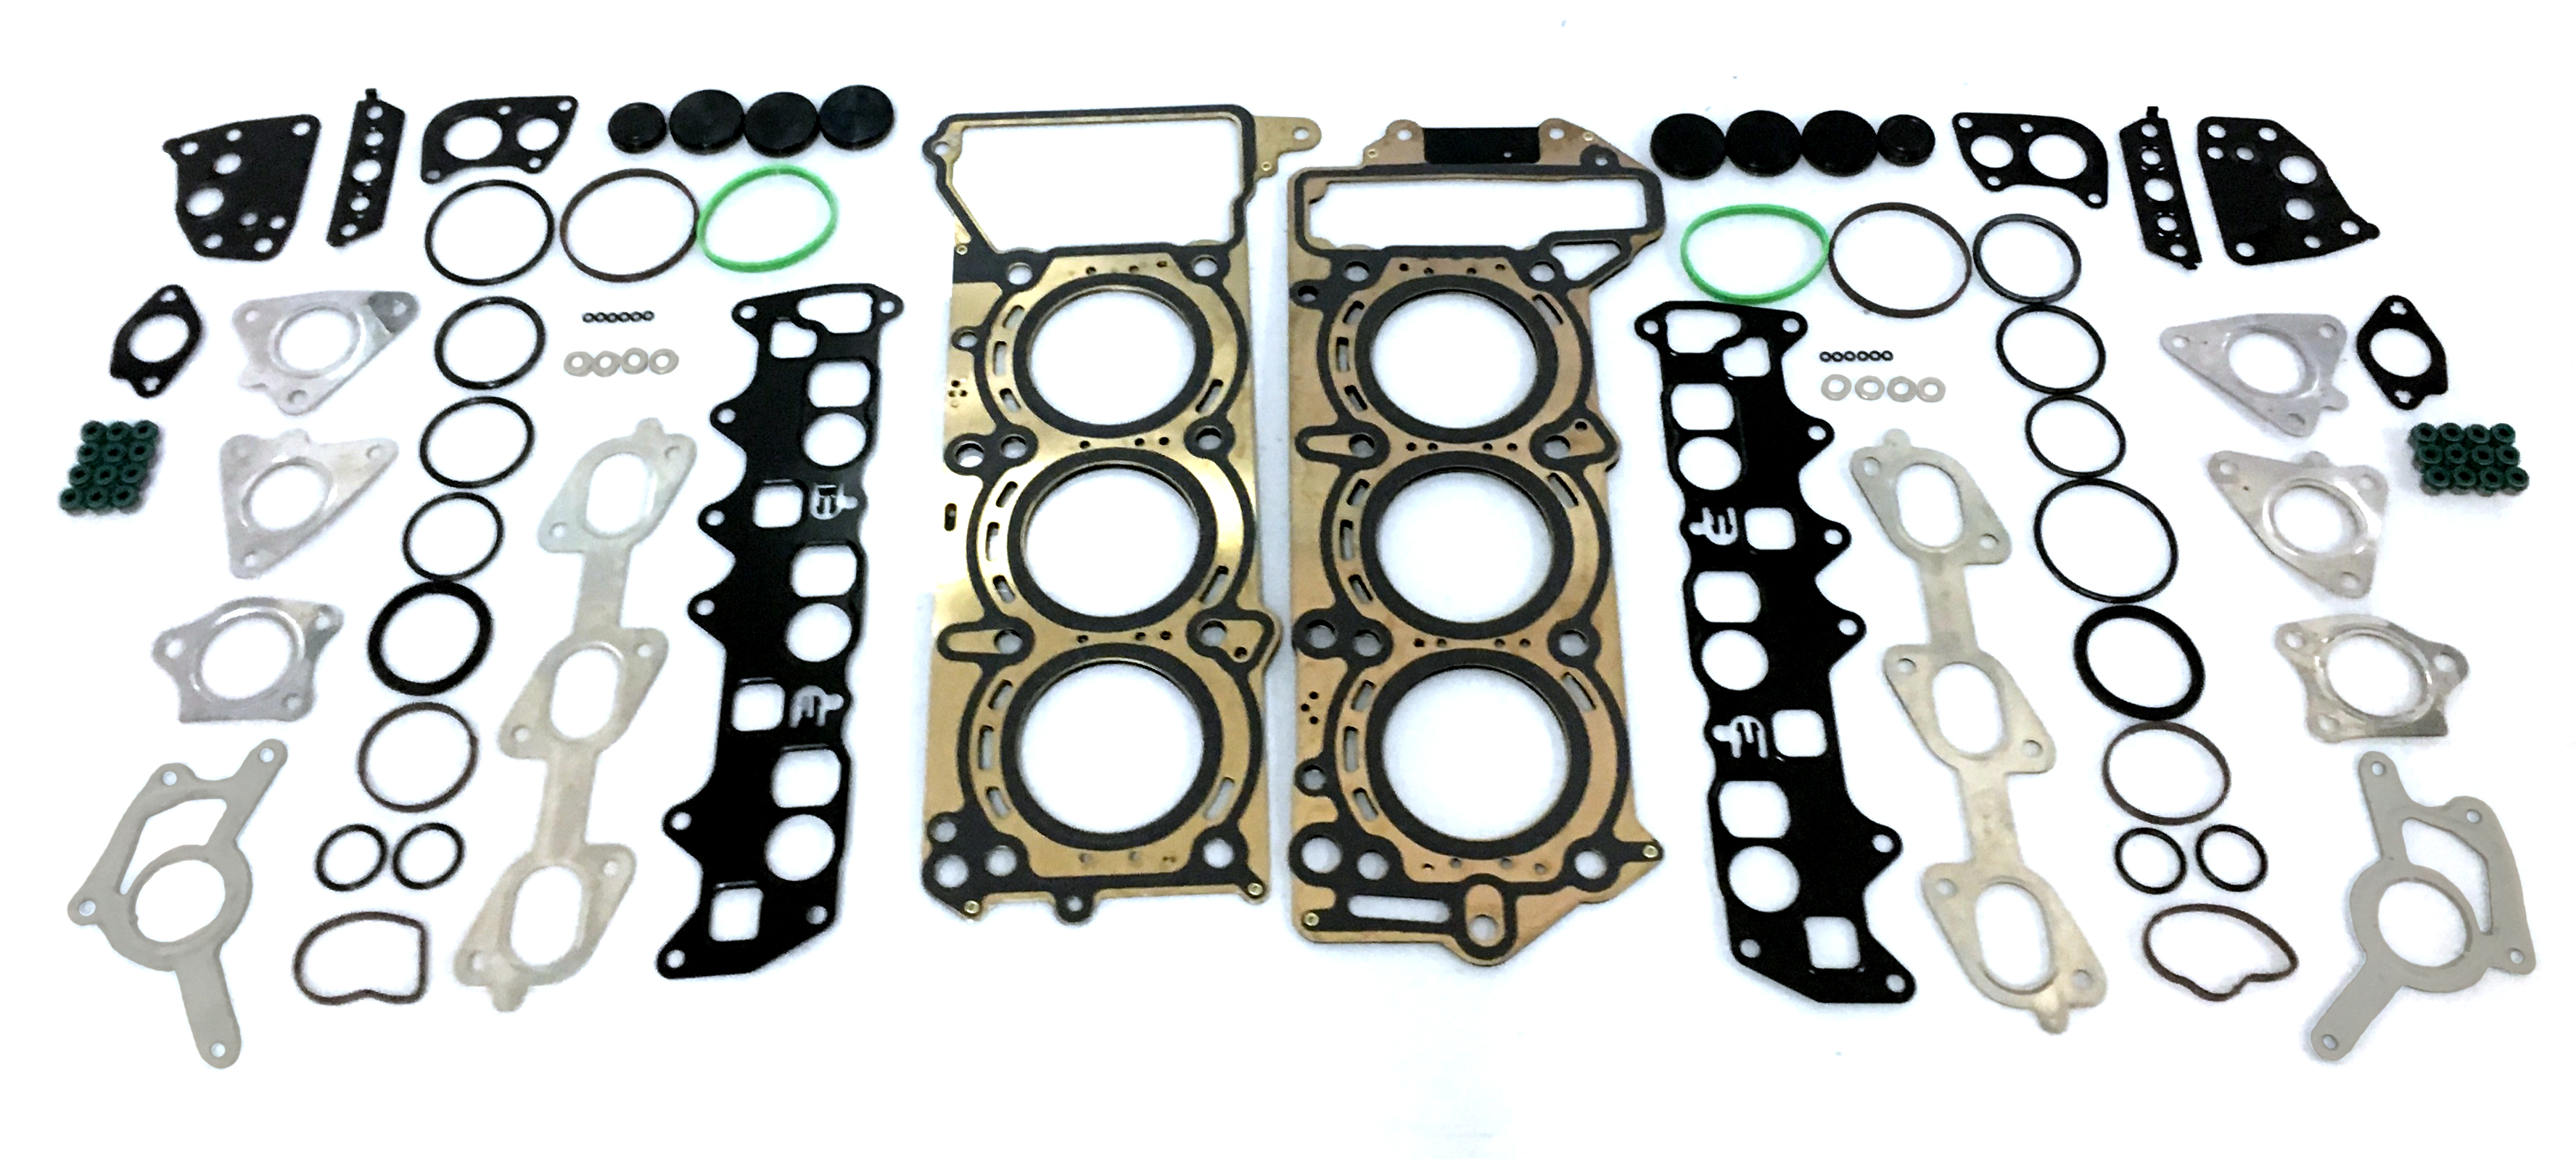 Cylinder head gasket gasket set Mercedes-Benz C-class 3.0 CDI 642.820 NEW